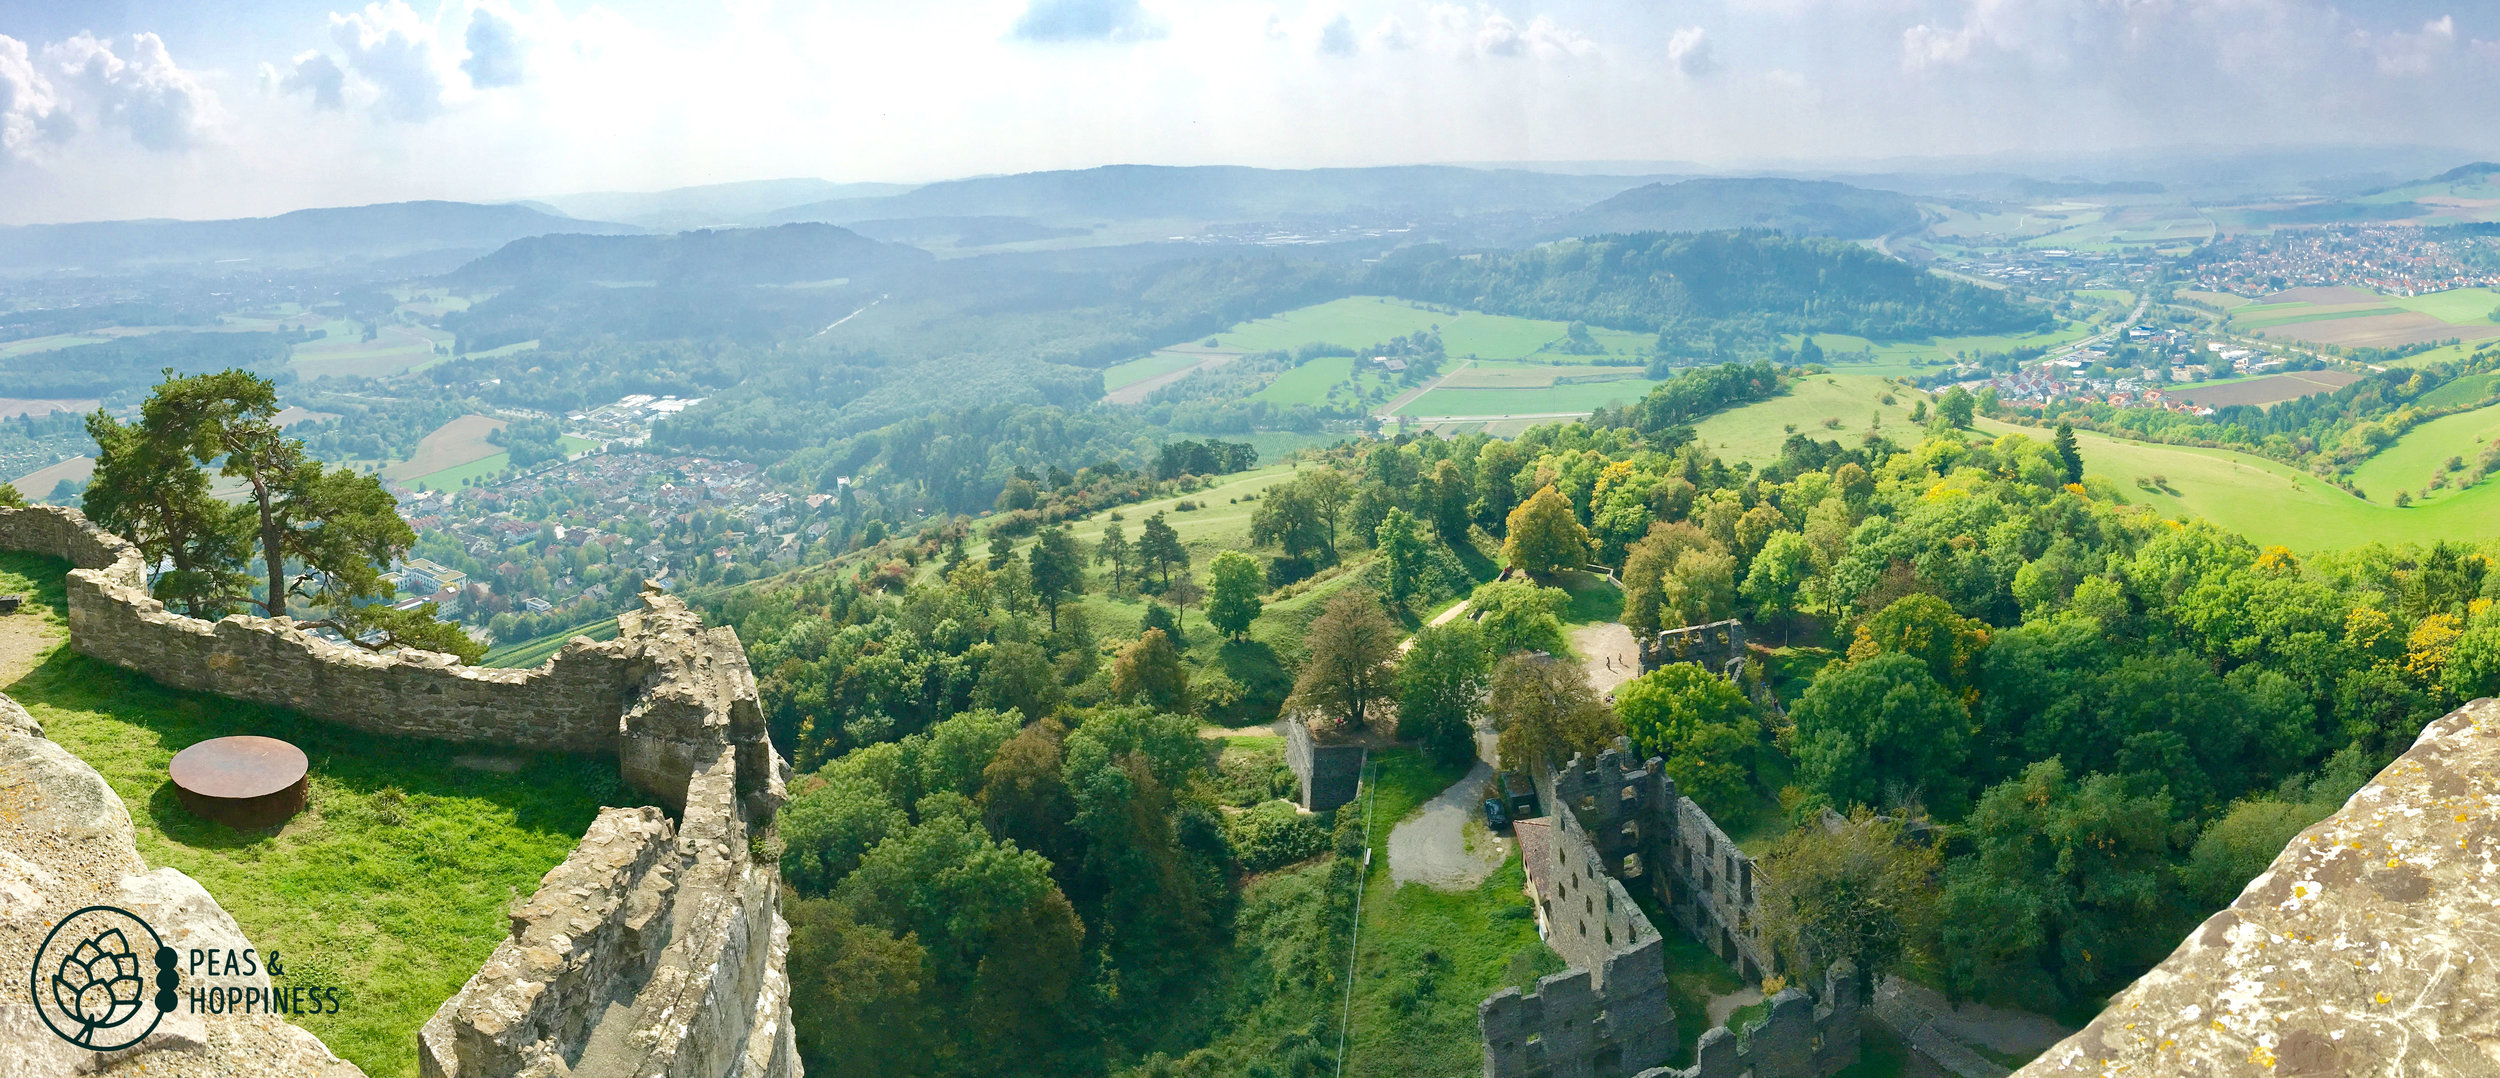 View from Hohentwiel Castle in Singen, Germany